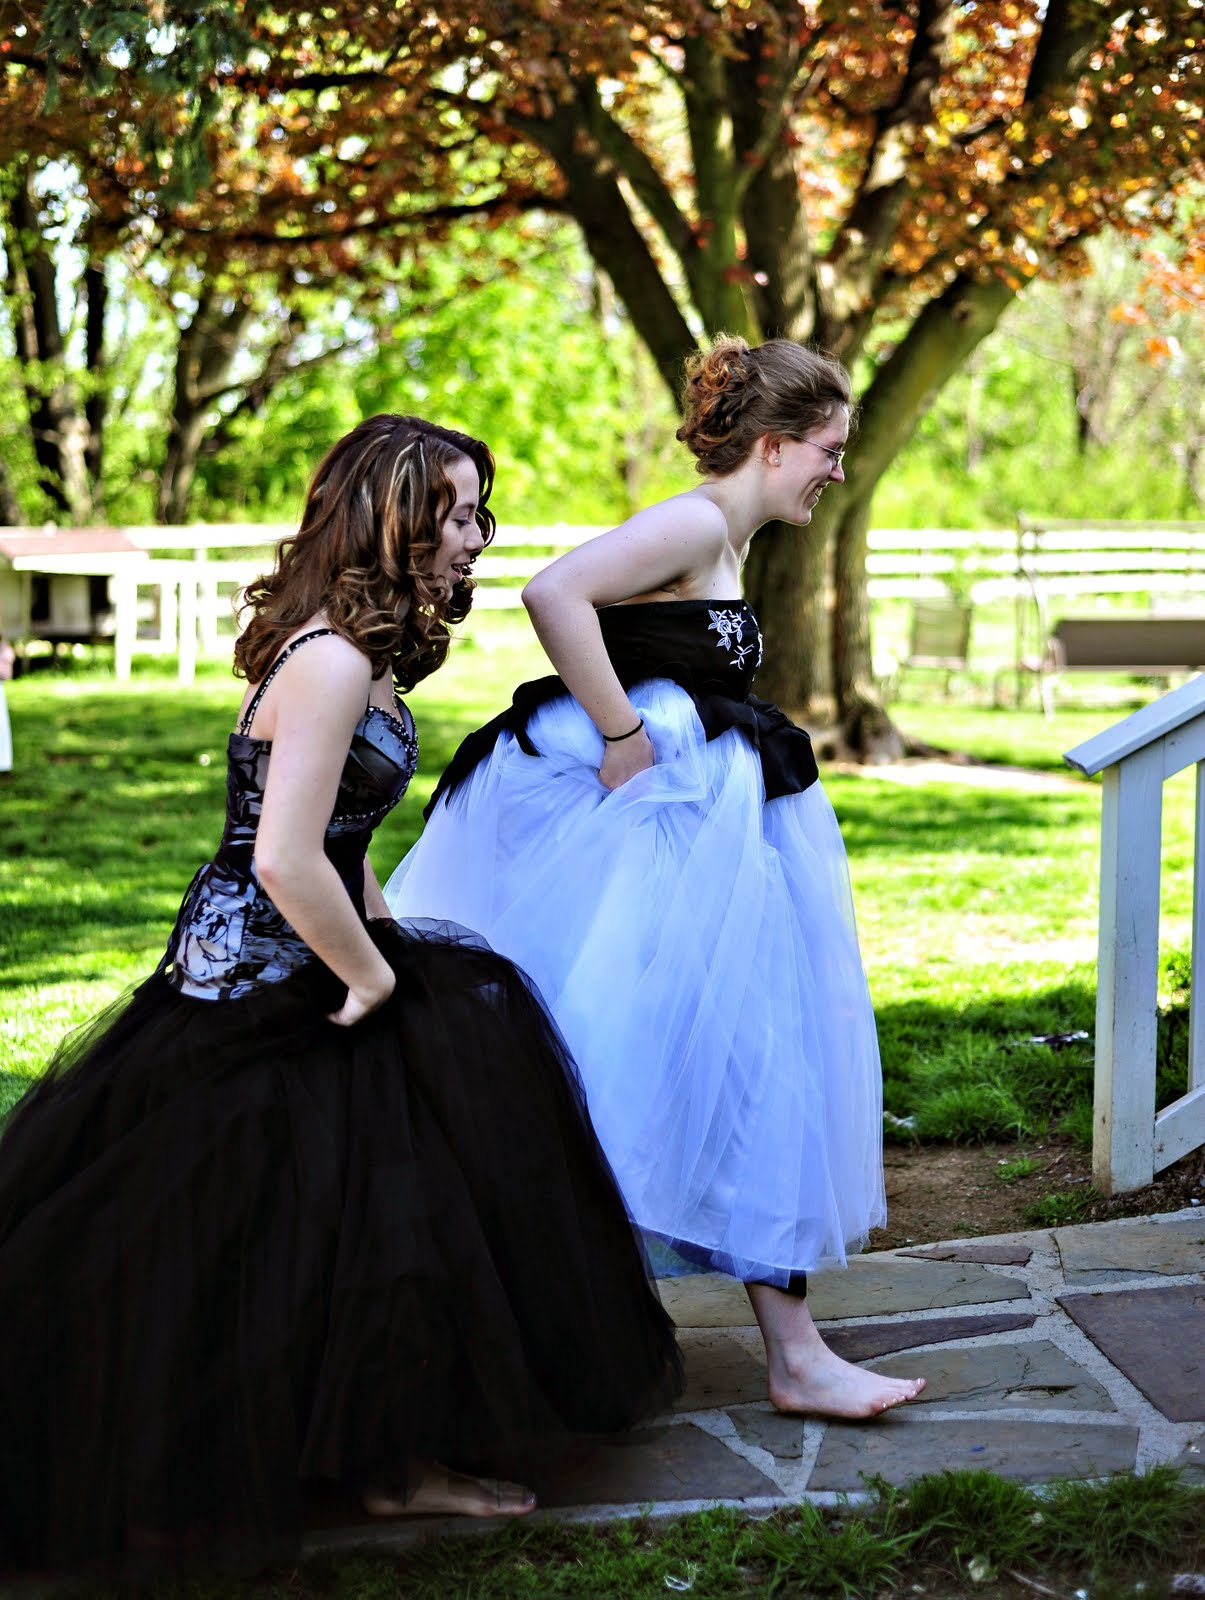 how to dance with a girl at prom